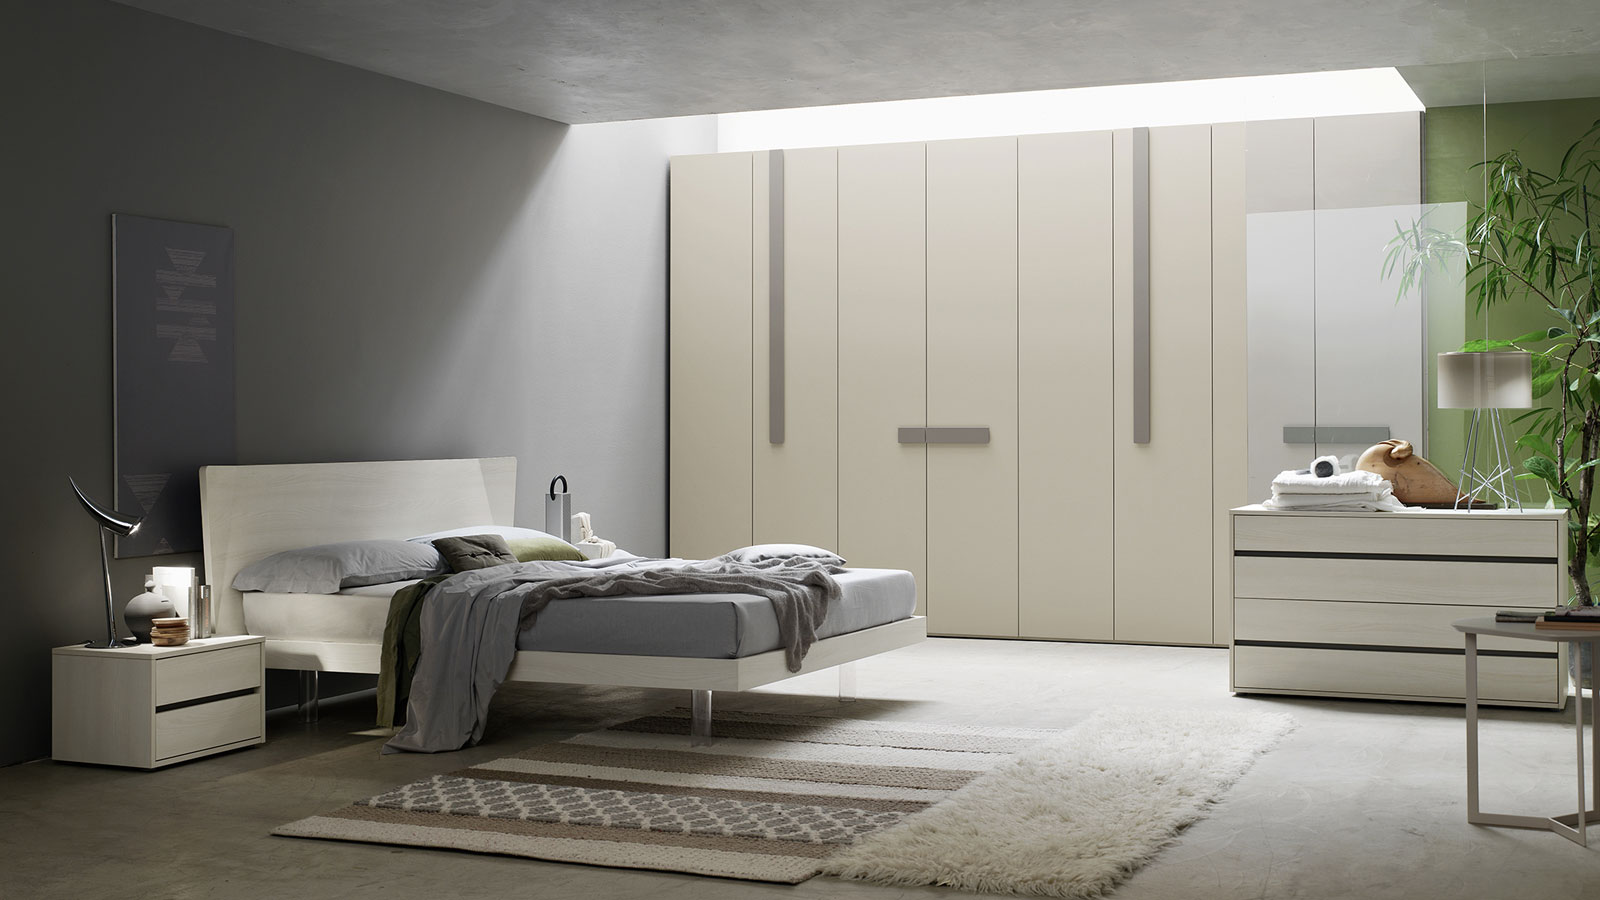 Design Furniture For The Living Room And Bedroom Spaces Orme